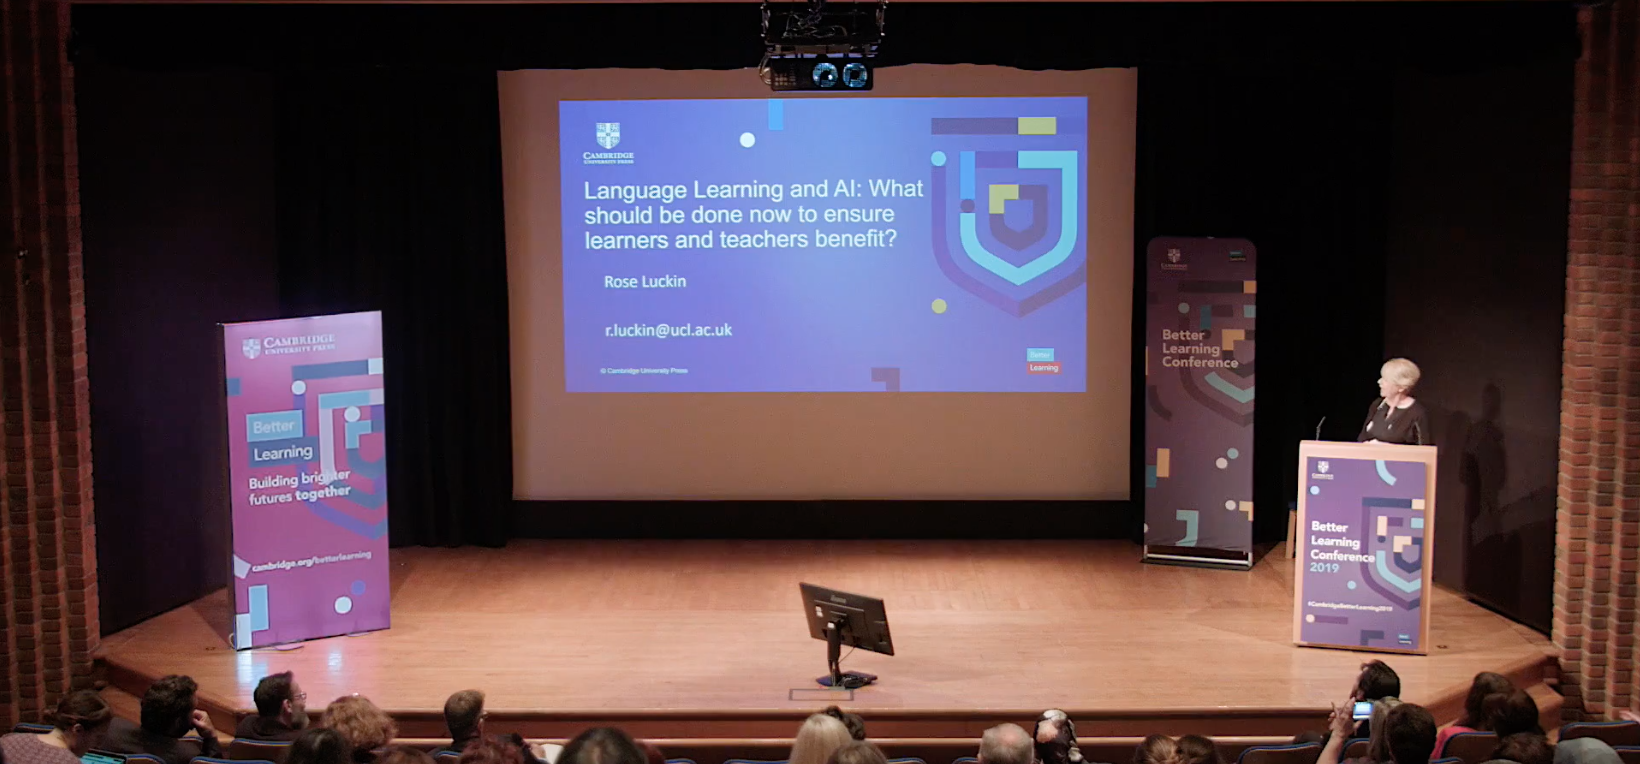 Better Learning Conference: Language and AI | World of Better Learning